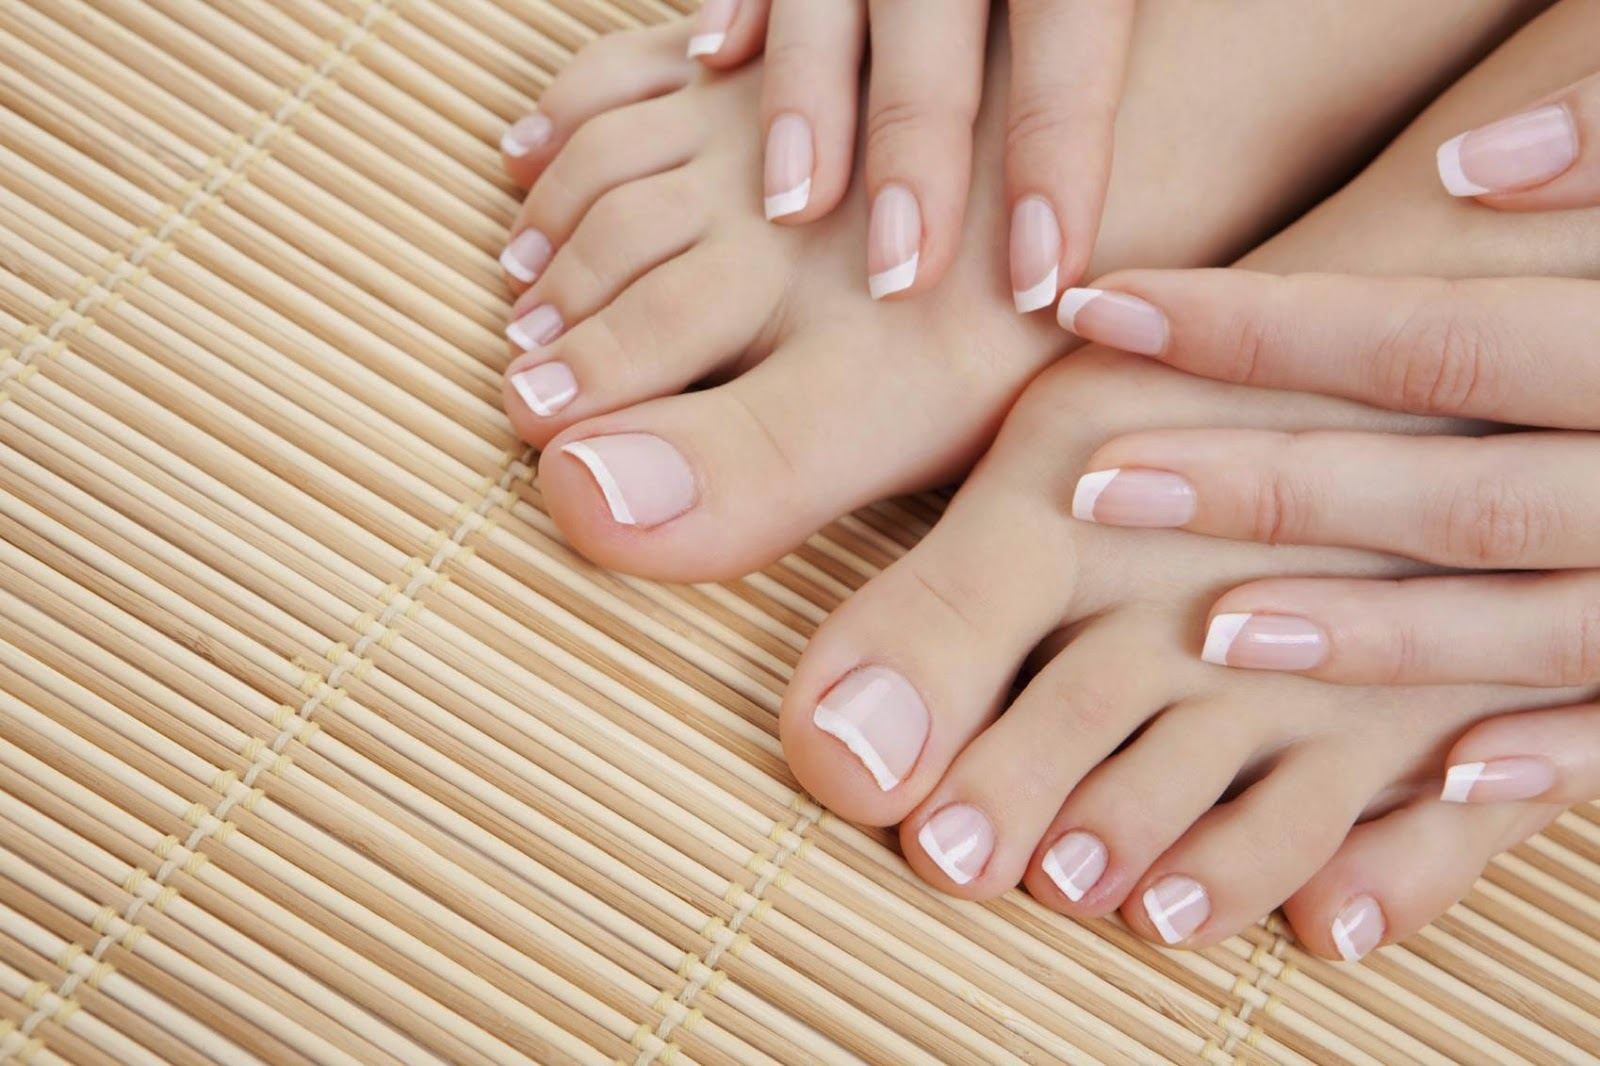 http://weightlossplume.blogspot.com/2014/10/argan-oil-for-perfect-nails.html